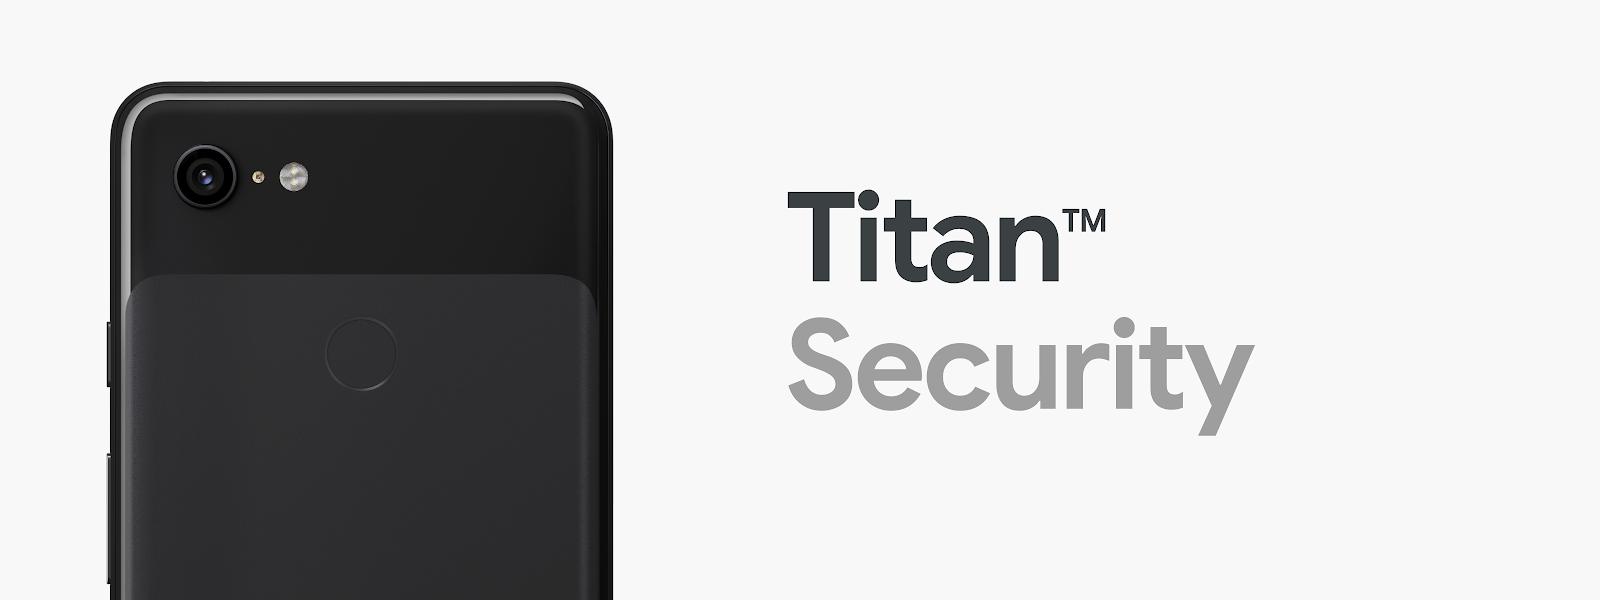 With Titan M We Took The Best Features From The Titan Chip Used In Google Cloud Data Centers And Tailored It For Mobile